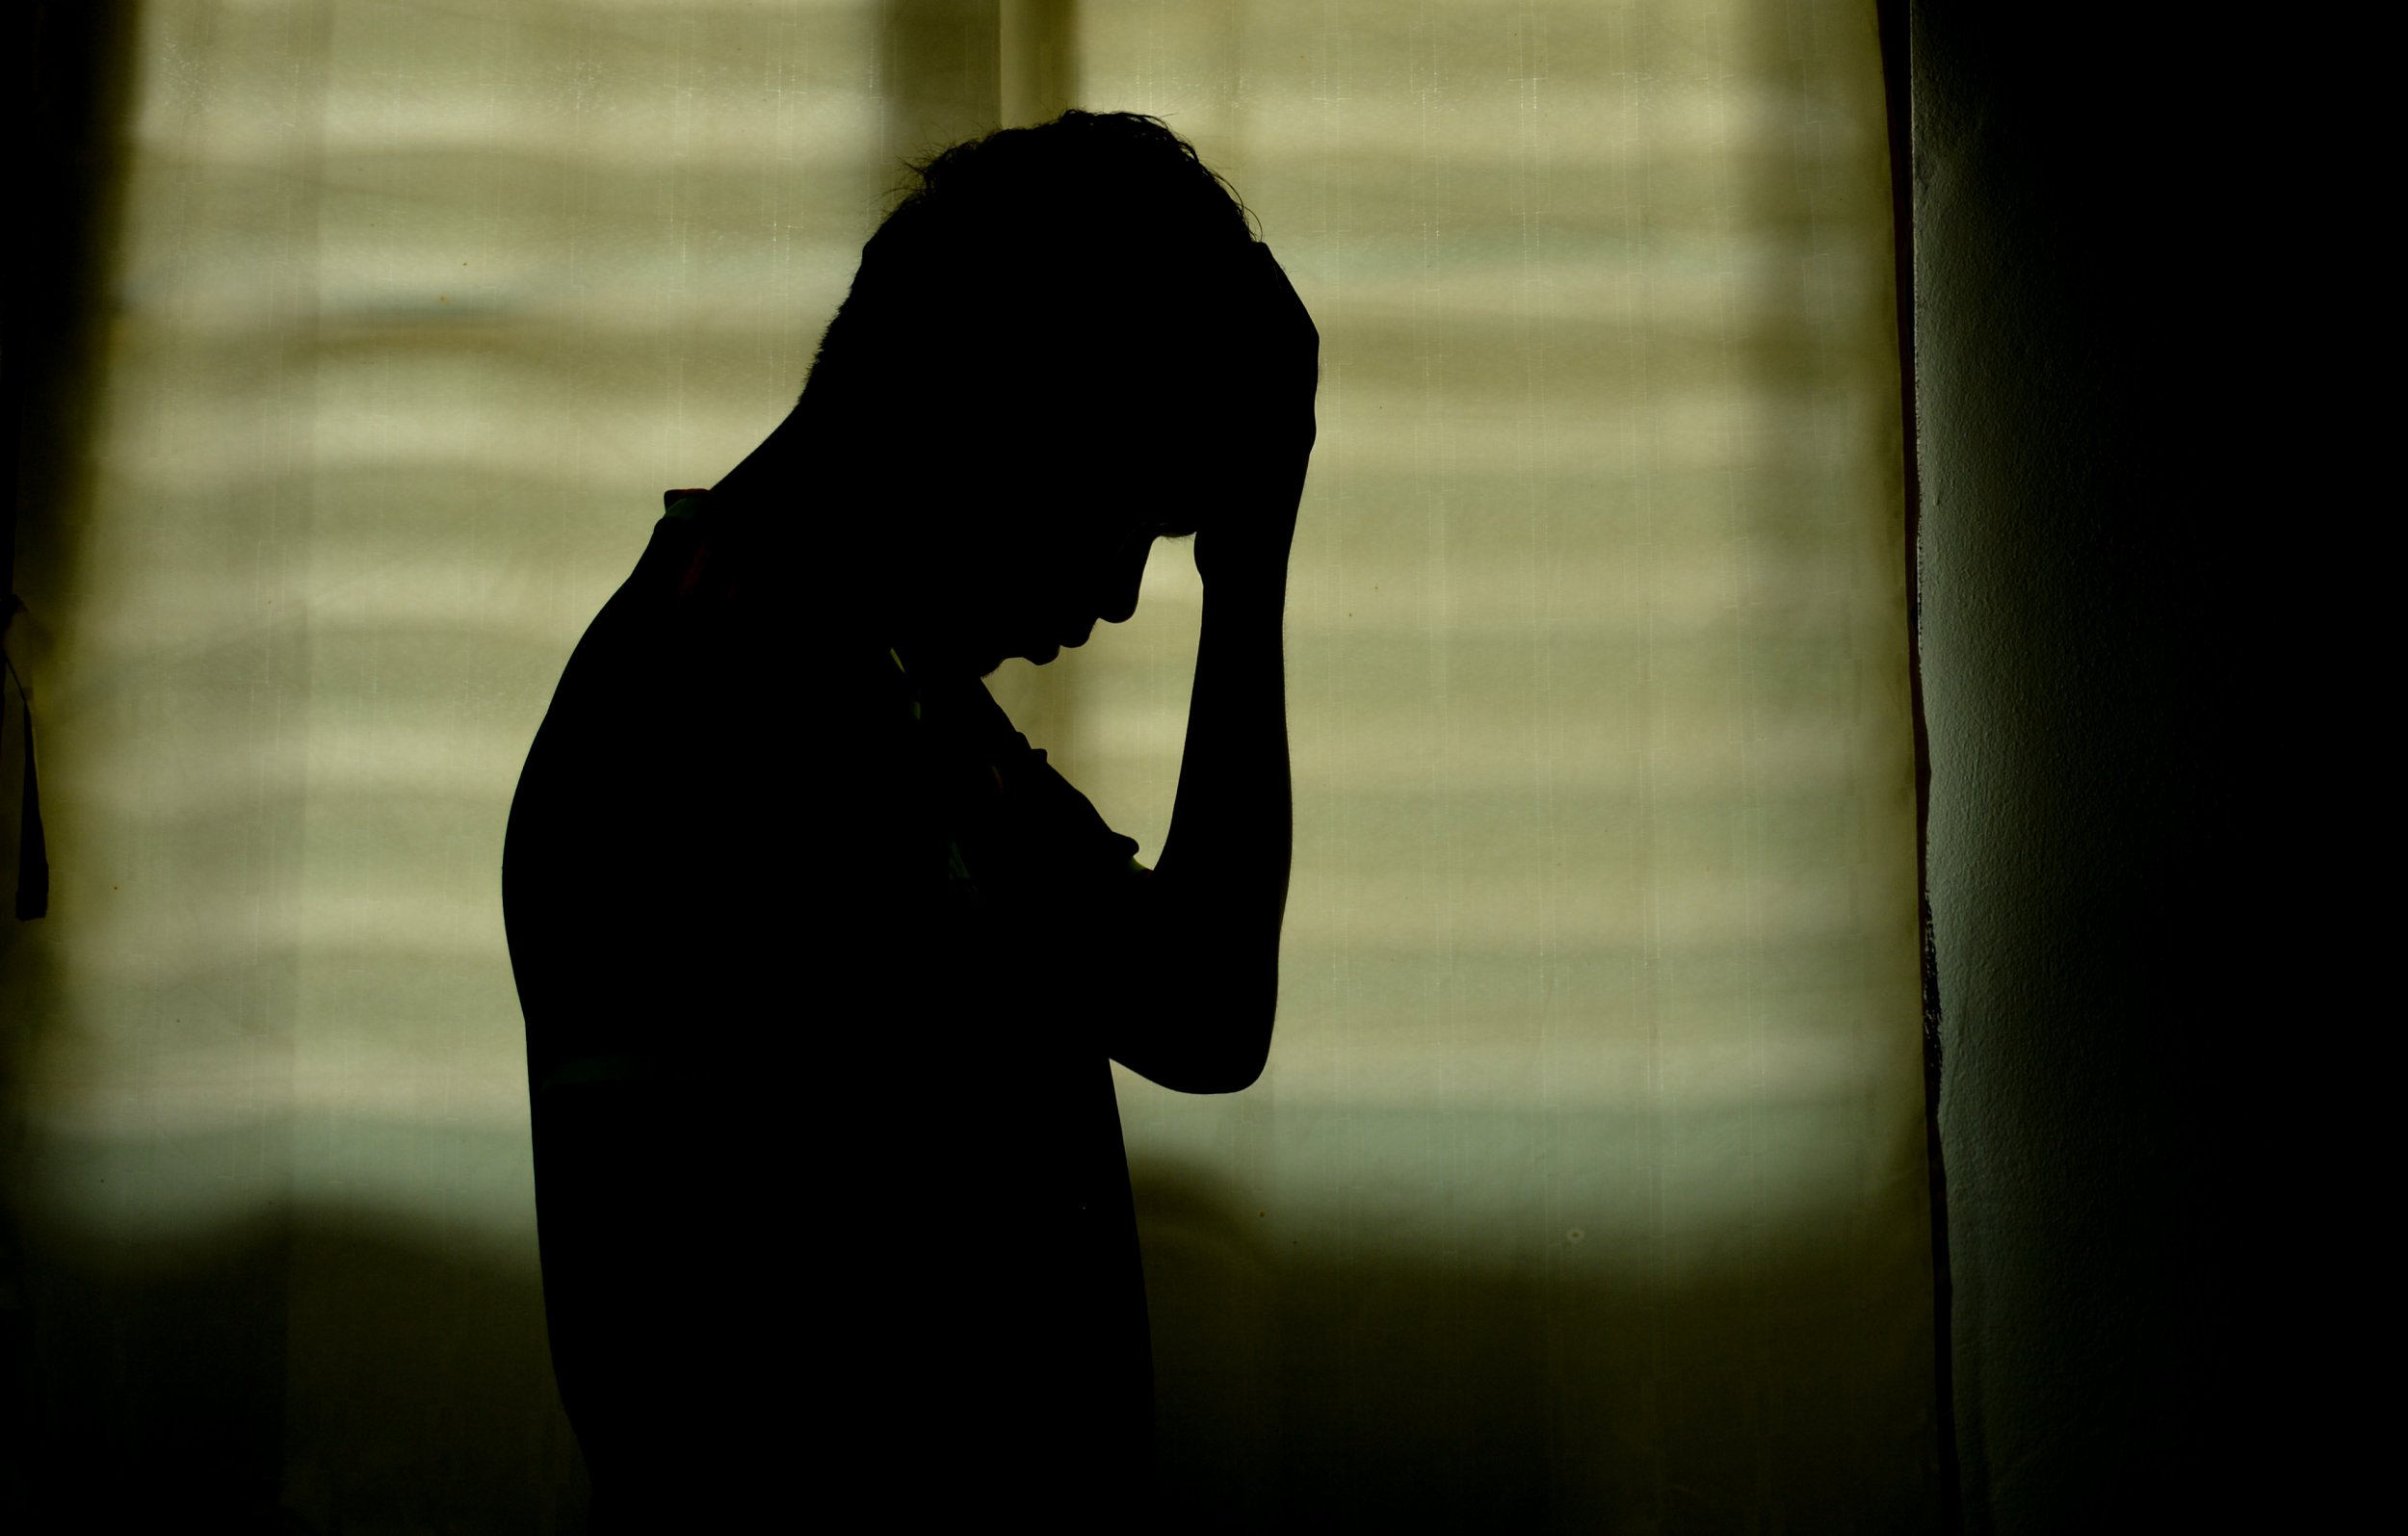 Man silhouette disappointed Window background with light in the room.; Shutterstock ID 677984281; Purchase Order: -